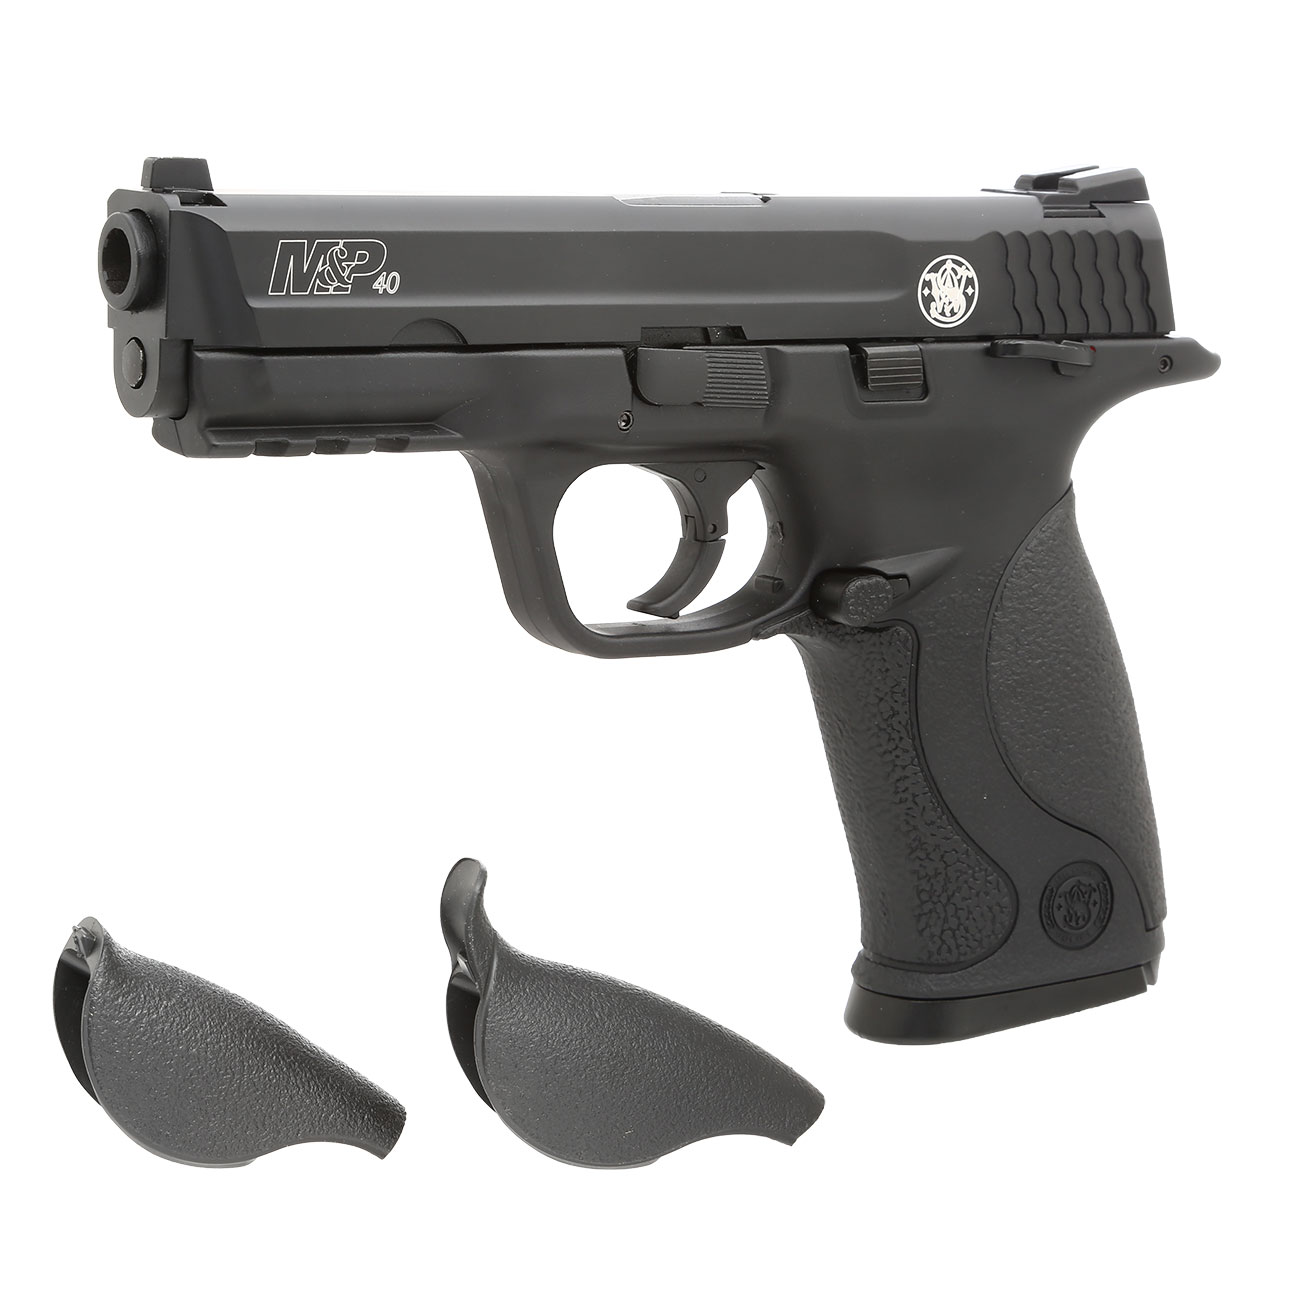 KWC Smith & Wesson M&P40 TS mit Metallschlitten CO2 BlowBack 6mm BB schwarz 0